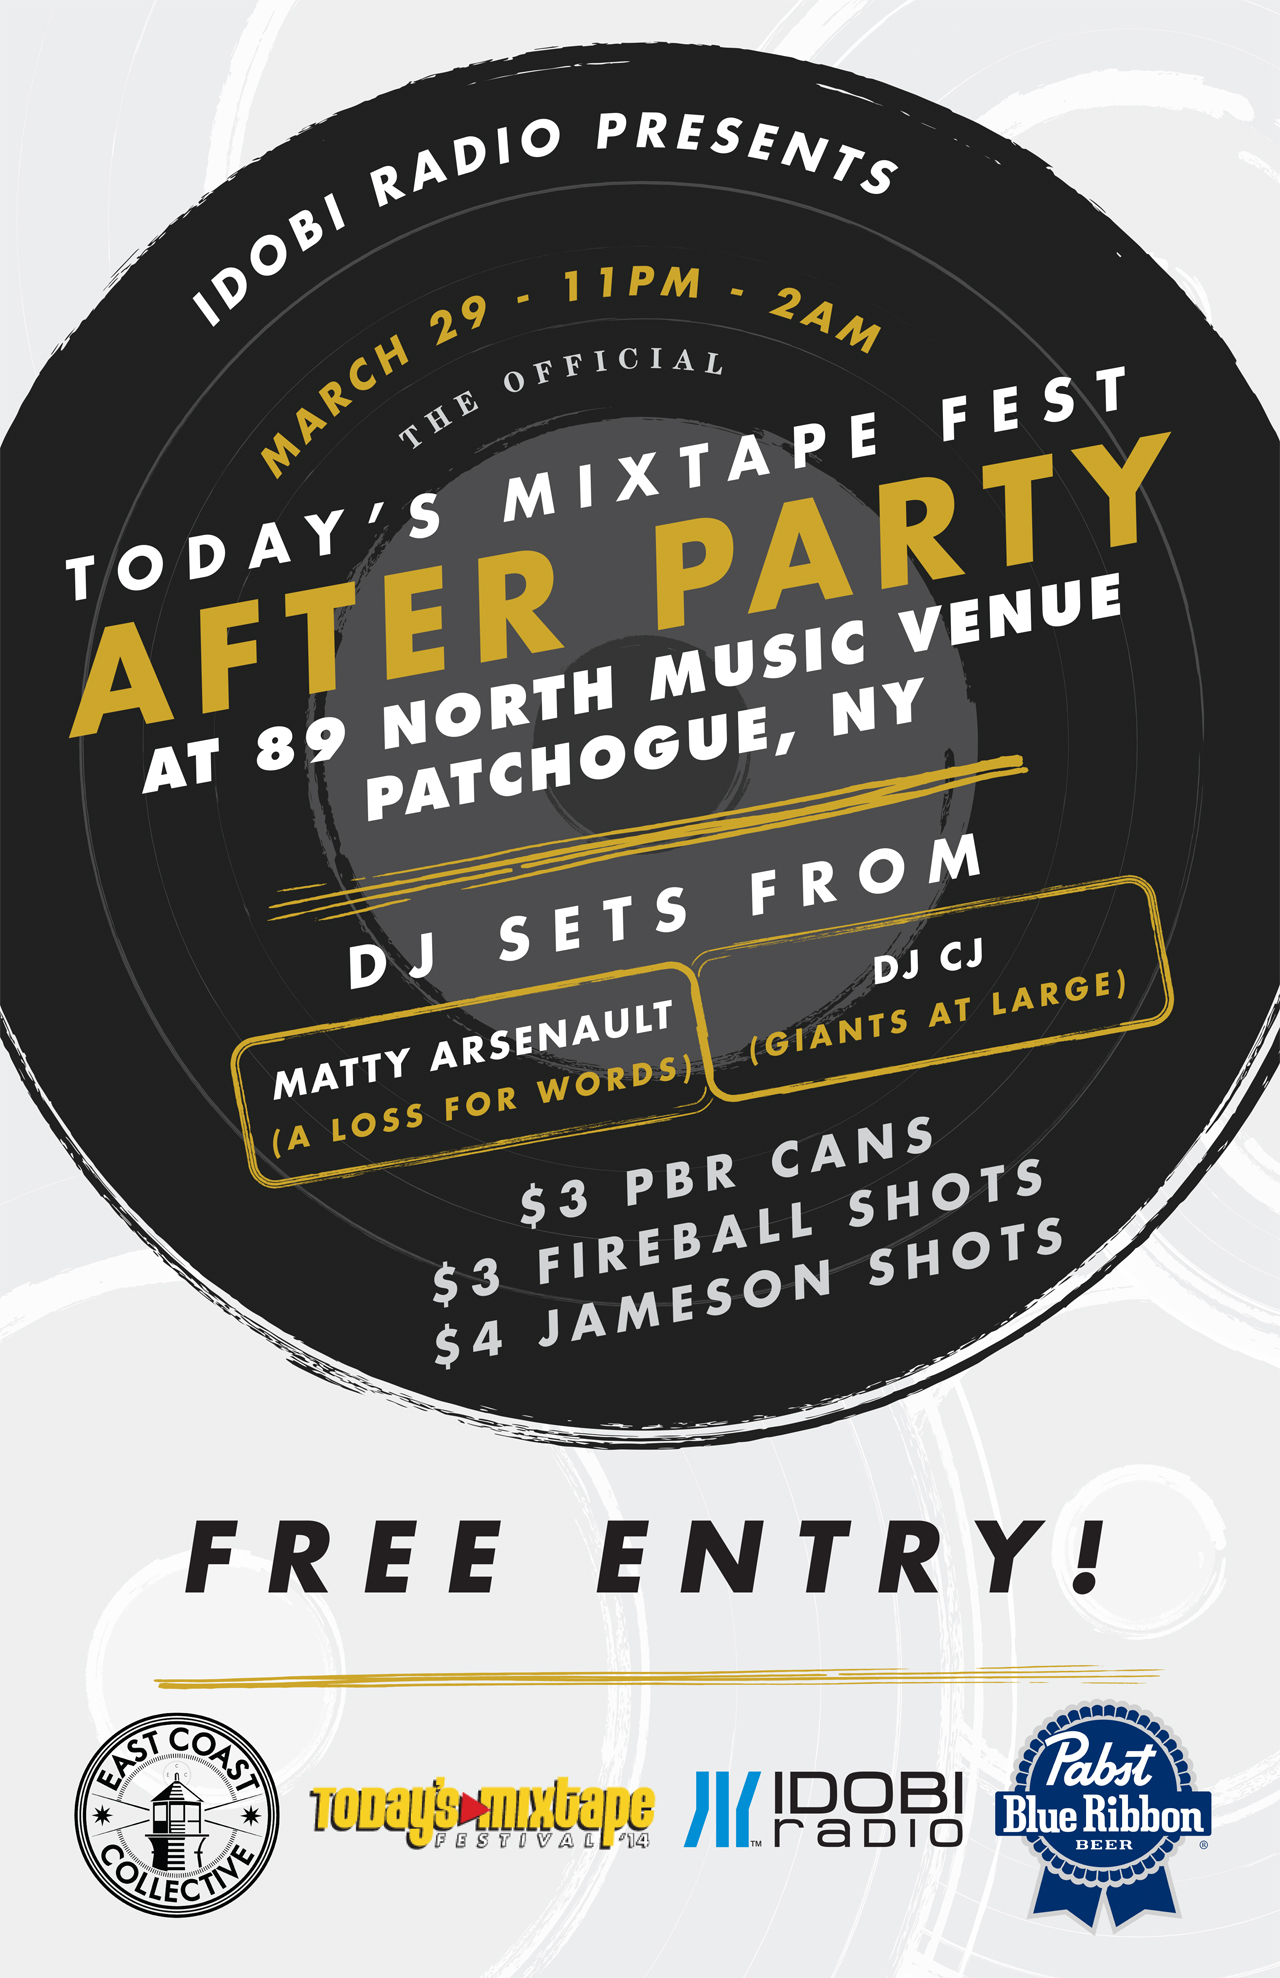 todays-mixtape-poster-free-entry